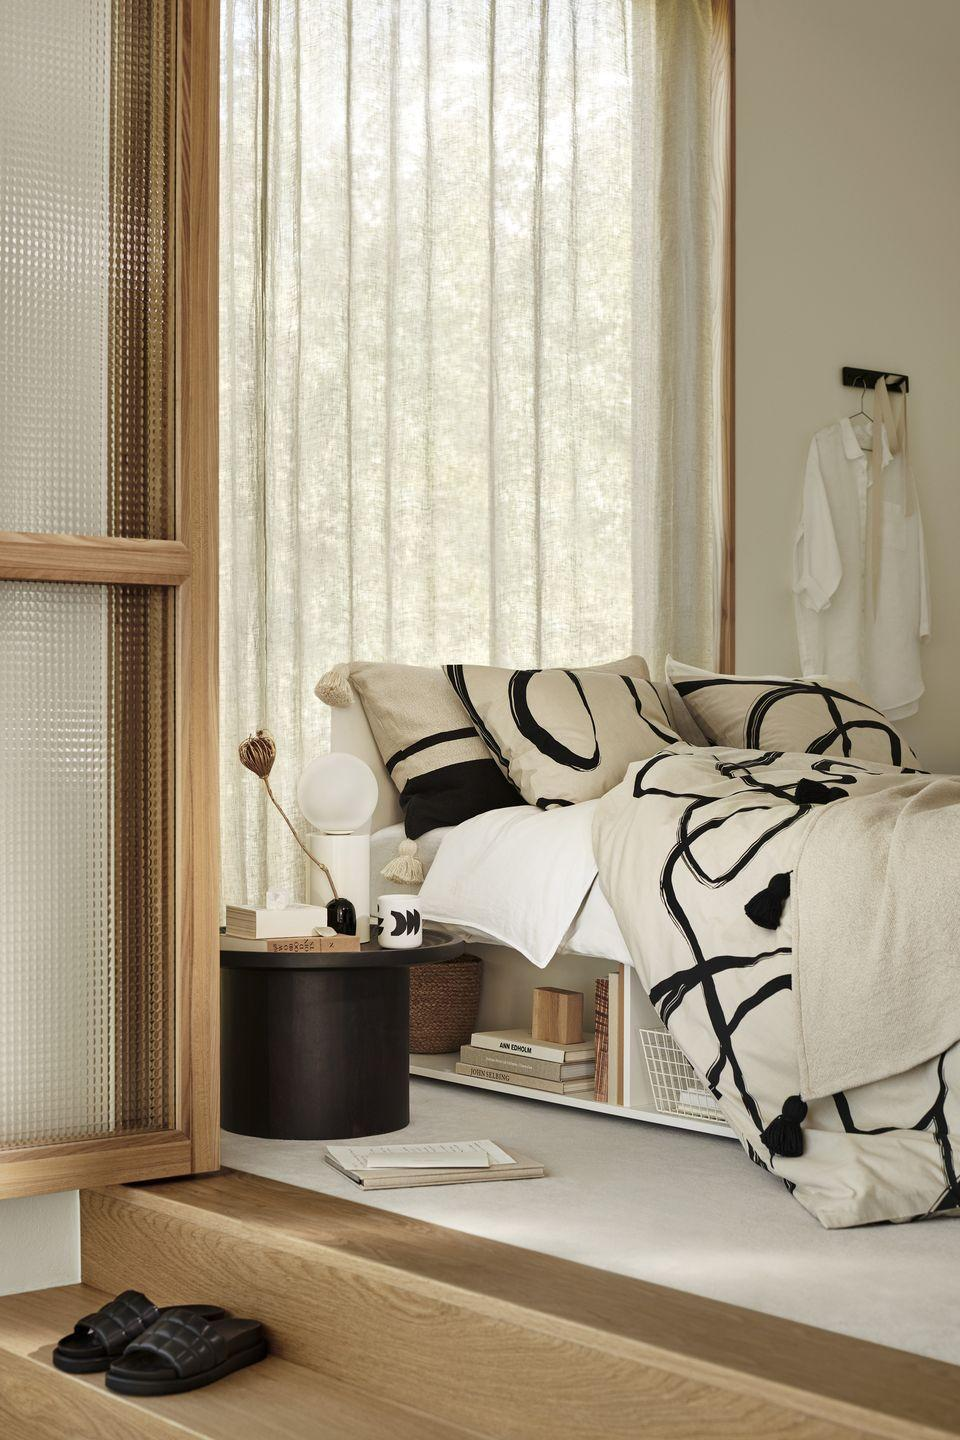 """<p>Turn your <a href=""""https://www.housebeautiful.com/uk/decorate/bedroom/a34478276/luxury-bedroom/"""" rel=""""nofollow noopener"""" target=""""_blank"""" data-ylk=""""slk:bedroom"""" class=""""link rapid-noclick-resp"""">bedroom</a> into a cosy sanctuary with new bedlinen, accessories and graphic prints. Creating an indulgent space on a budget has never been easier. </p><p><a class=""""link rapid-noclick-resp"""" href=""""https://go.redirectingat.com?id=127X1599956&url=https%3A%2F%2Fwww2.hm.com%2Fen_gb%2Fhome.html&sref=https%3A%2F%2Fwww.housebeautiful.com%2Fuk%2Flifestyle%2Fshopping%2Fg35116386%2Fhandm-home-spring%2F"""" rel=""""nofollow noopener"""" target=""""_blank"""" data-ylk=""""slk:SHOP H&M HOME"""">SHOP H&M HOME</a> </p>"""